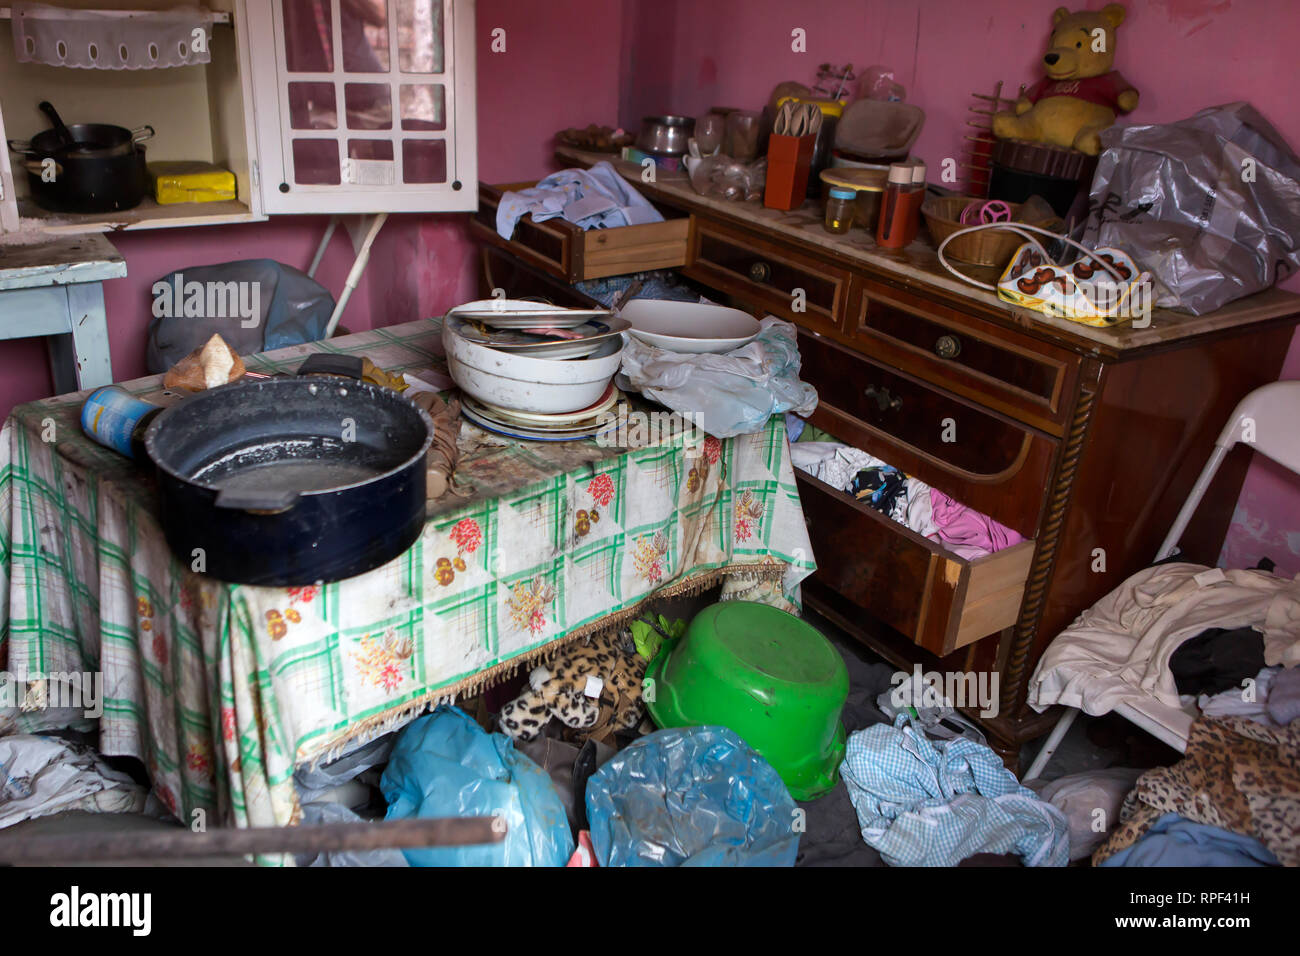 NAPLES - Dirty mess in an appartment in the center that was squatted by homeless people. - Stock Image